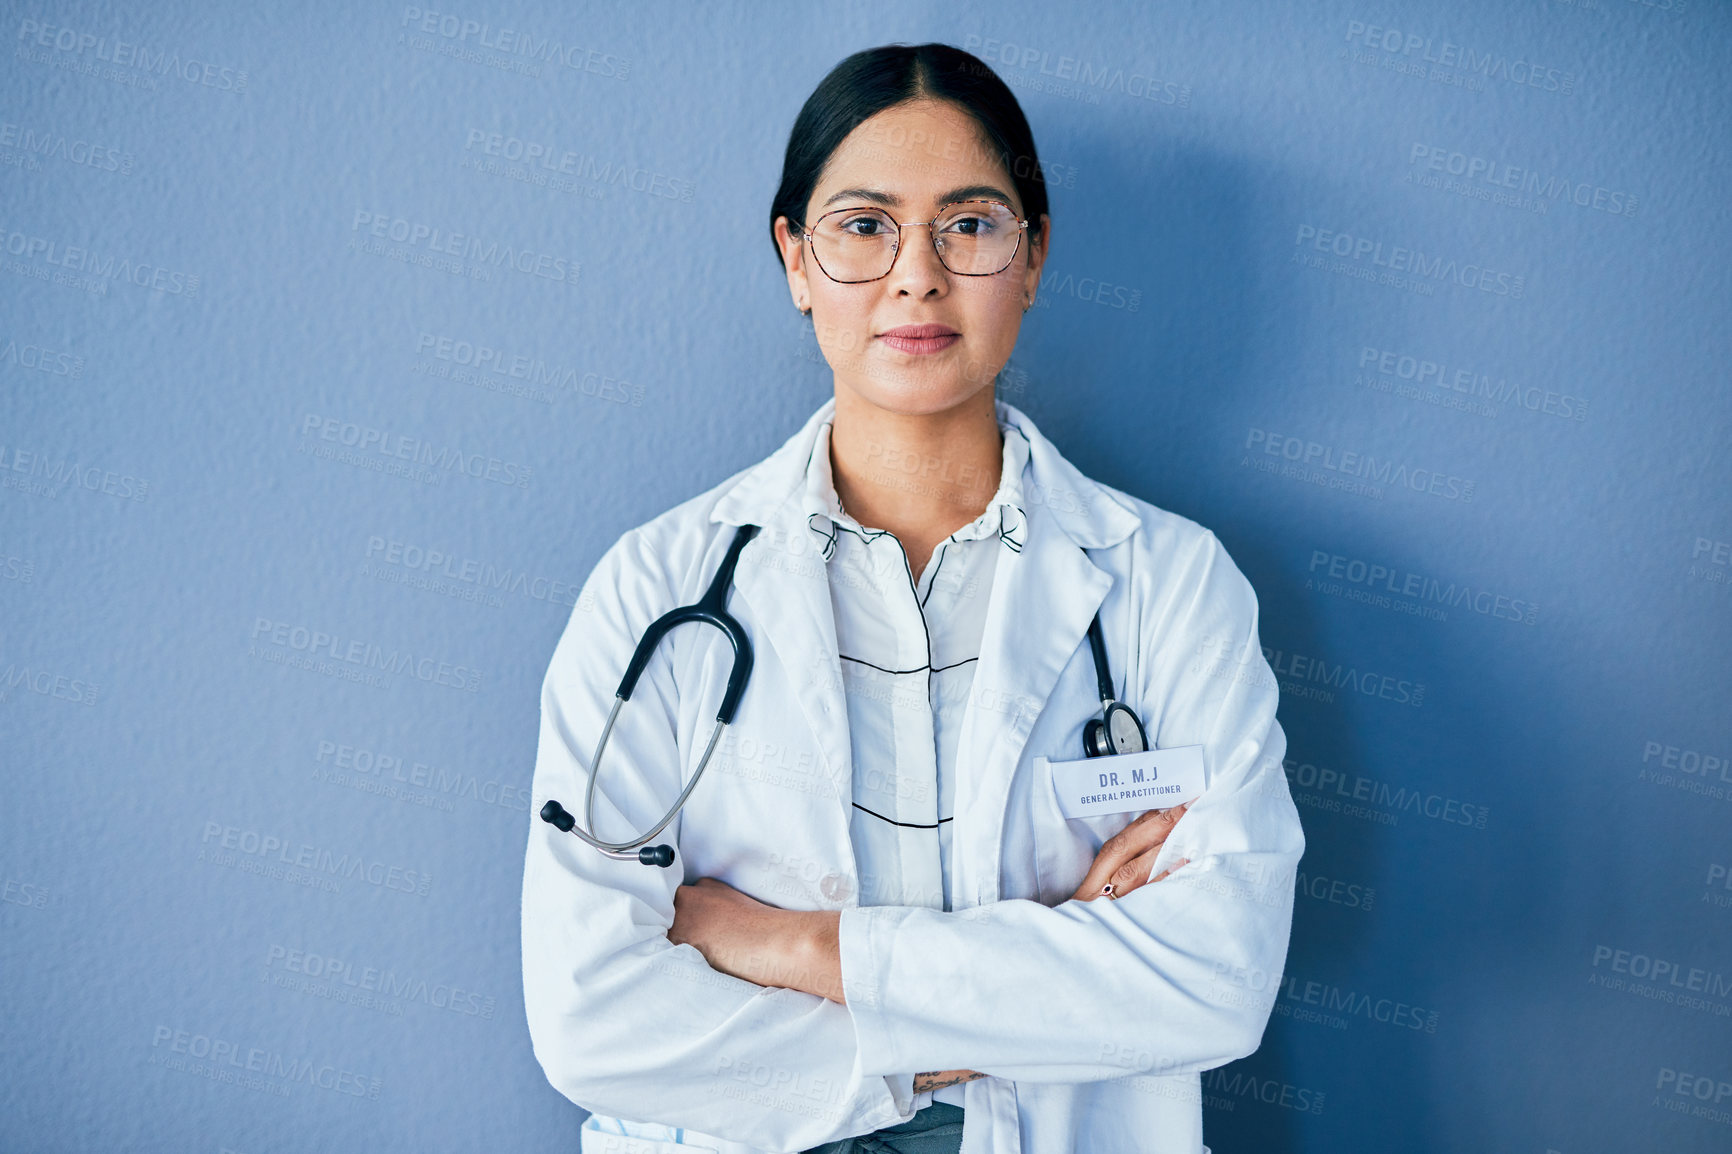 Buy stock photo Studio portrait of a confident young doctor standing against a blue background